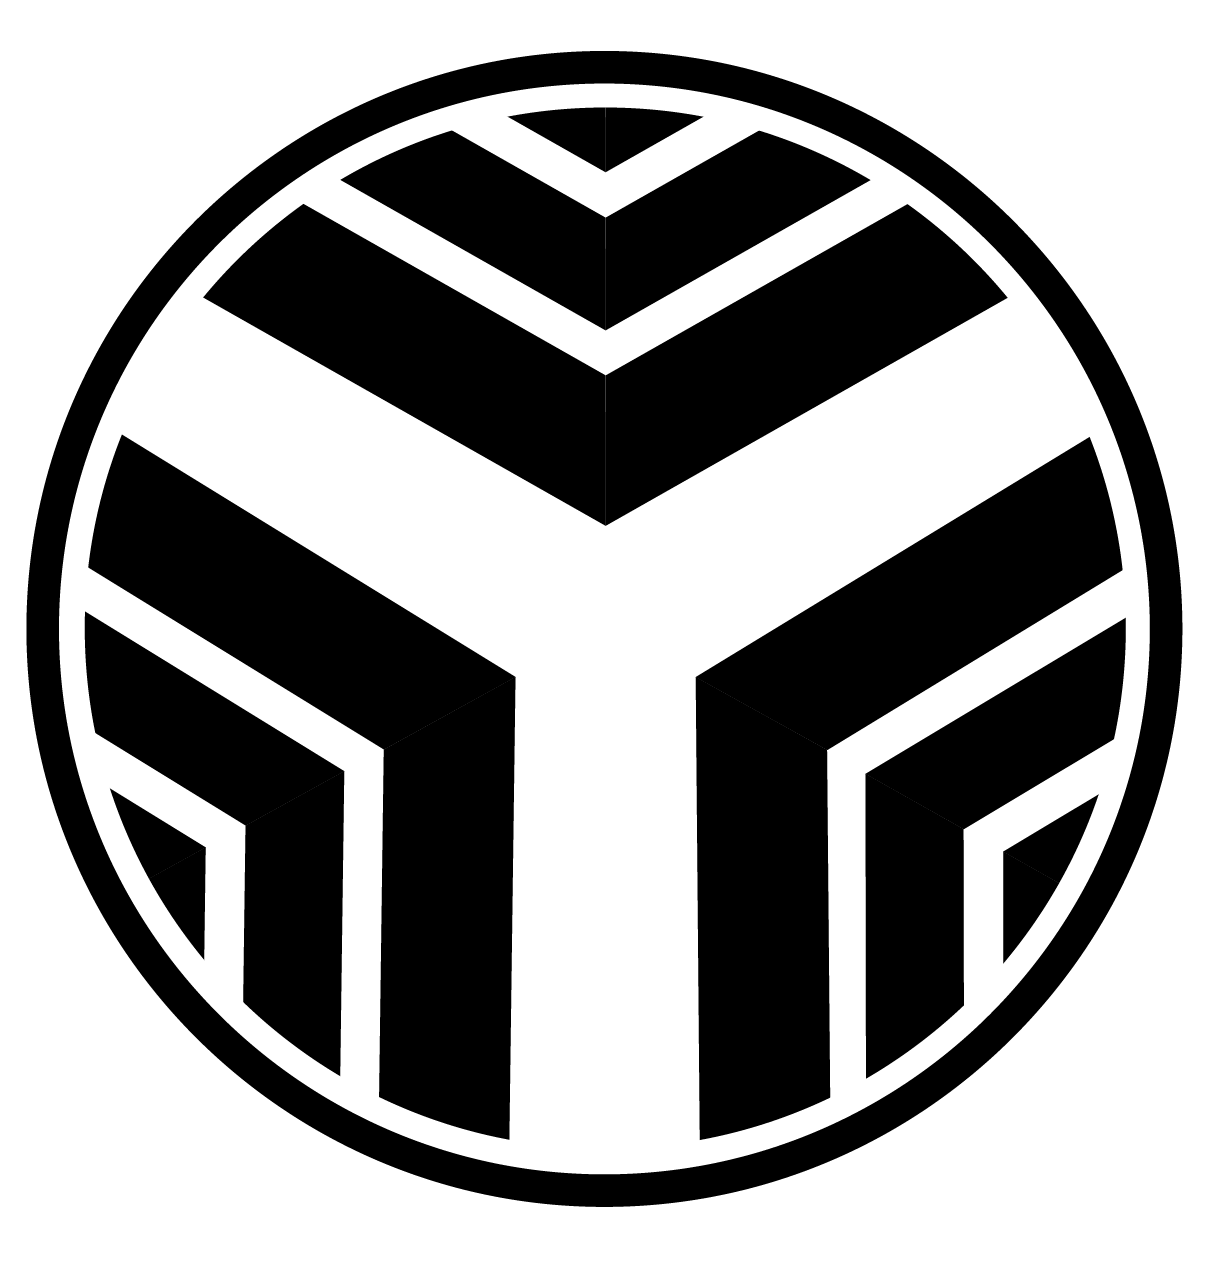 A black, gray and white  circular logo with a central Y built out by gray scaled chevrons giving it a sense of flow